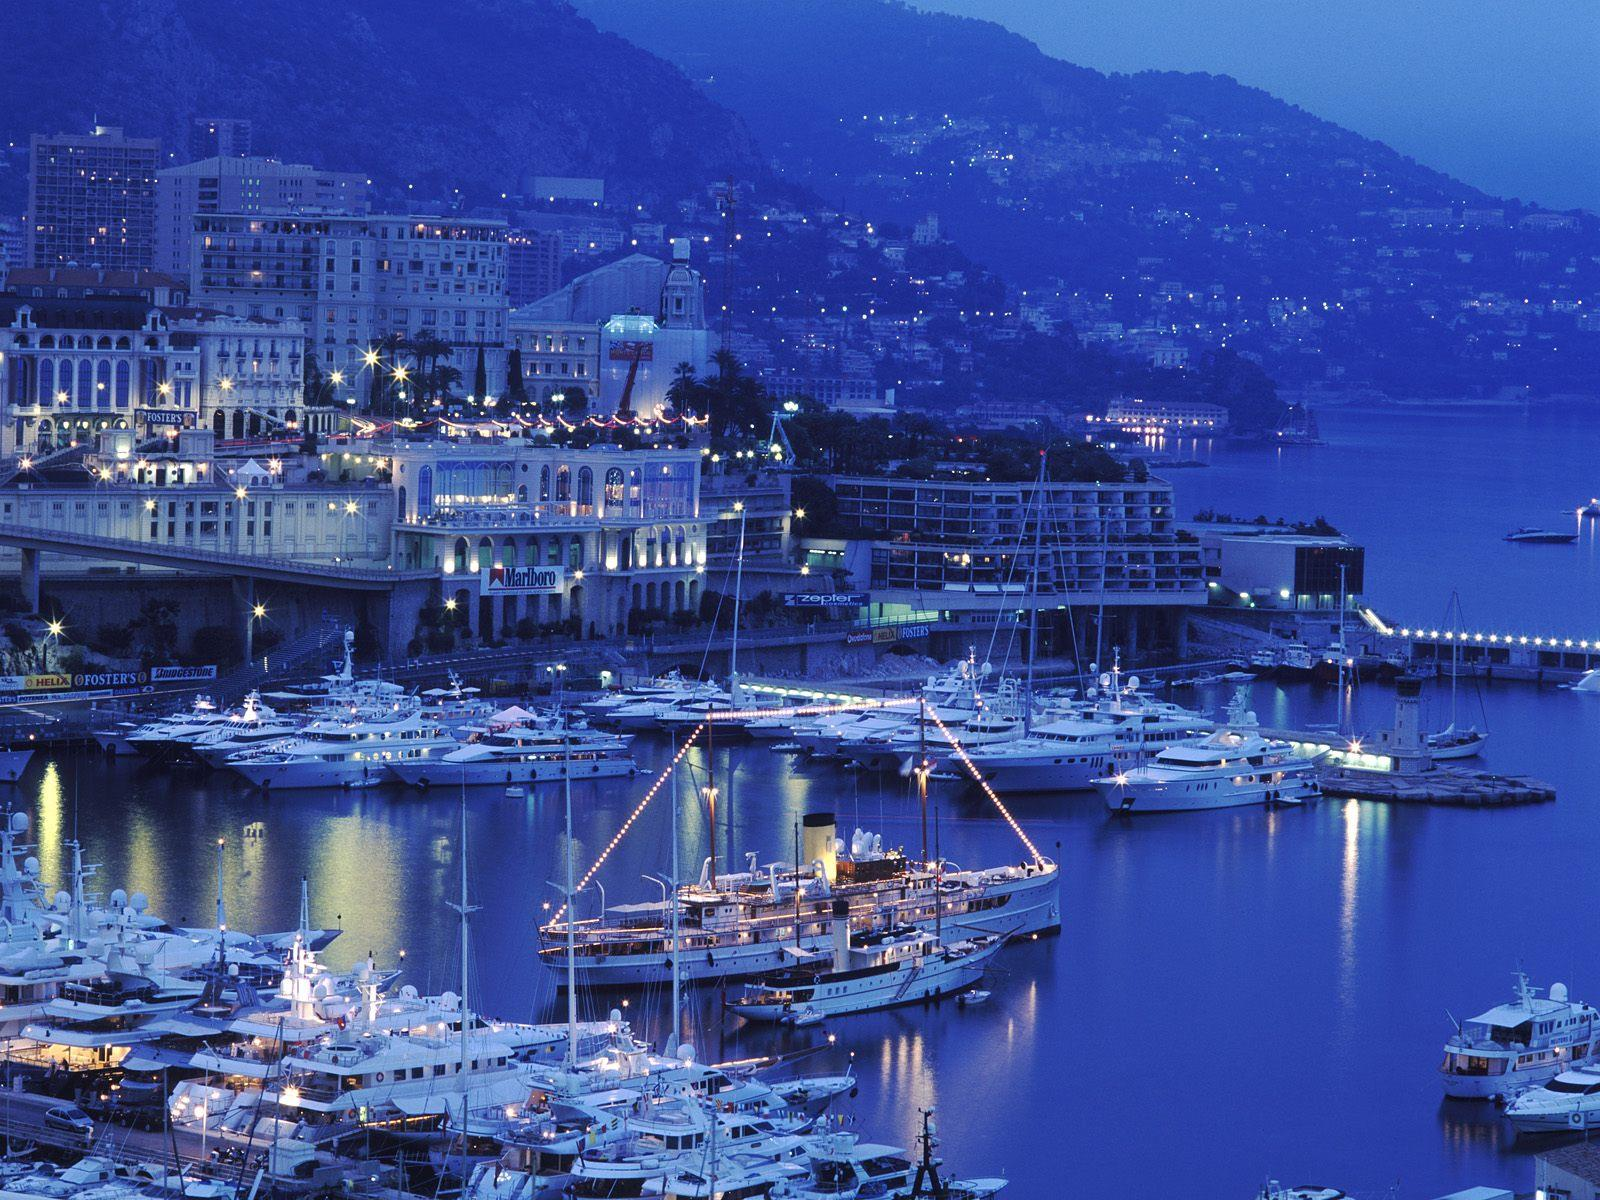 Big harbor of monaco at dusk